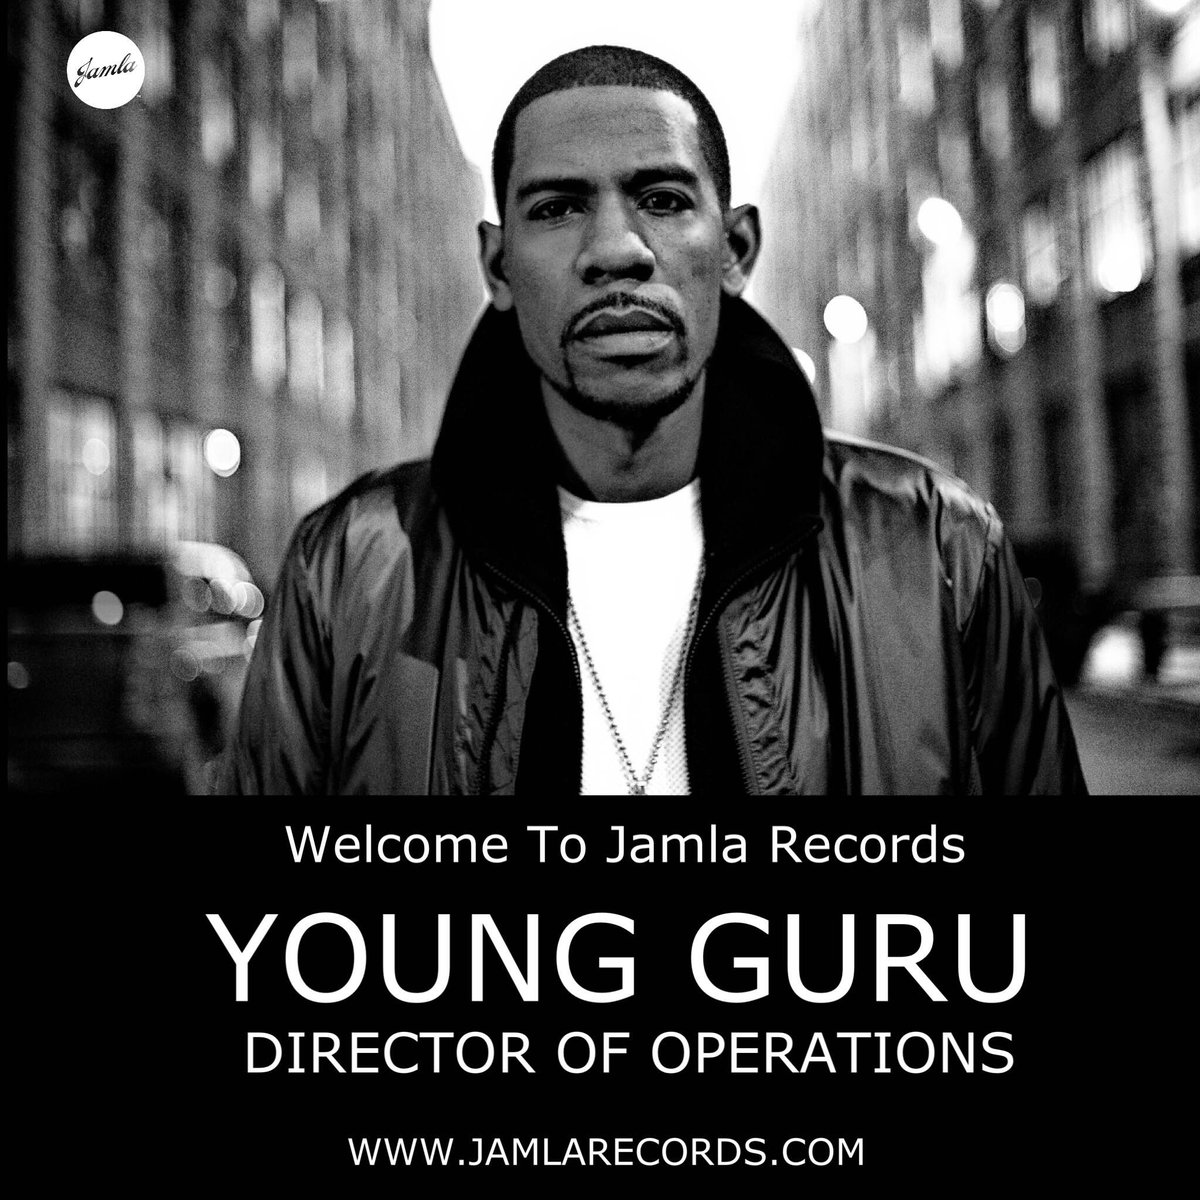 Everyone, welcome our new director of operations: @Young_Guru. Read more at http://t.co/8ofI079JTH! #JamlaIsTheSquad http://t.co/0xphdsbUqy